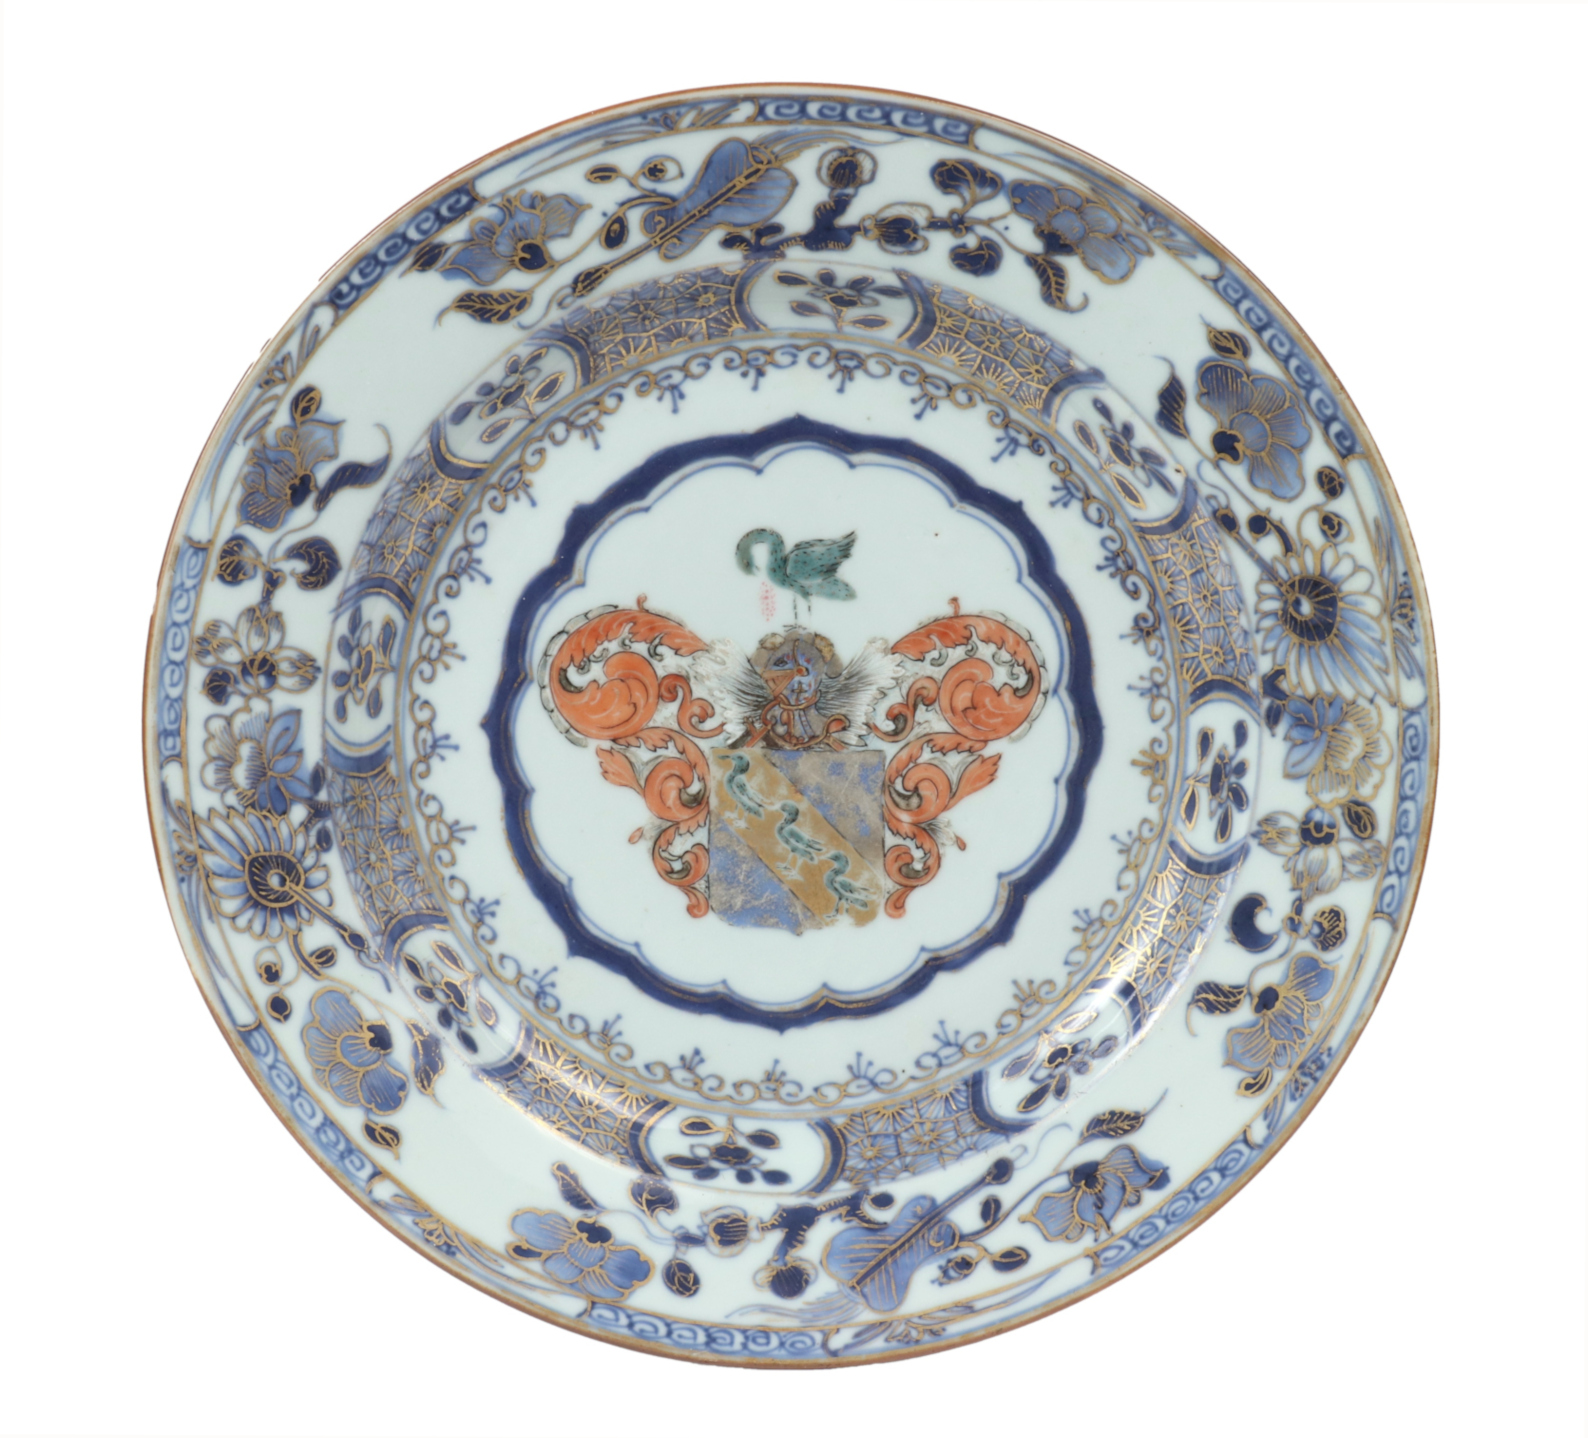 Chinese Export Armorial Plate, c. 1730